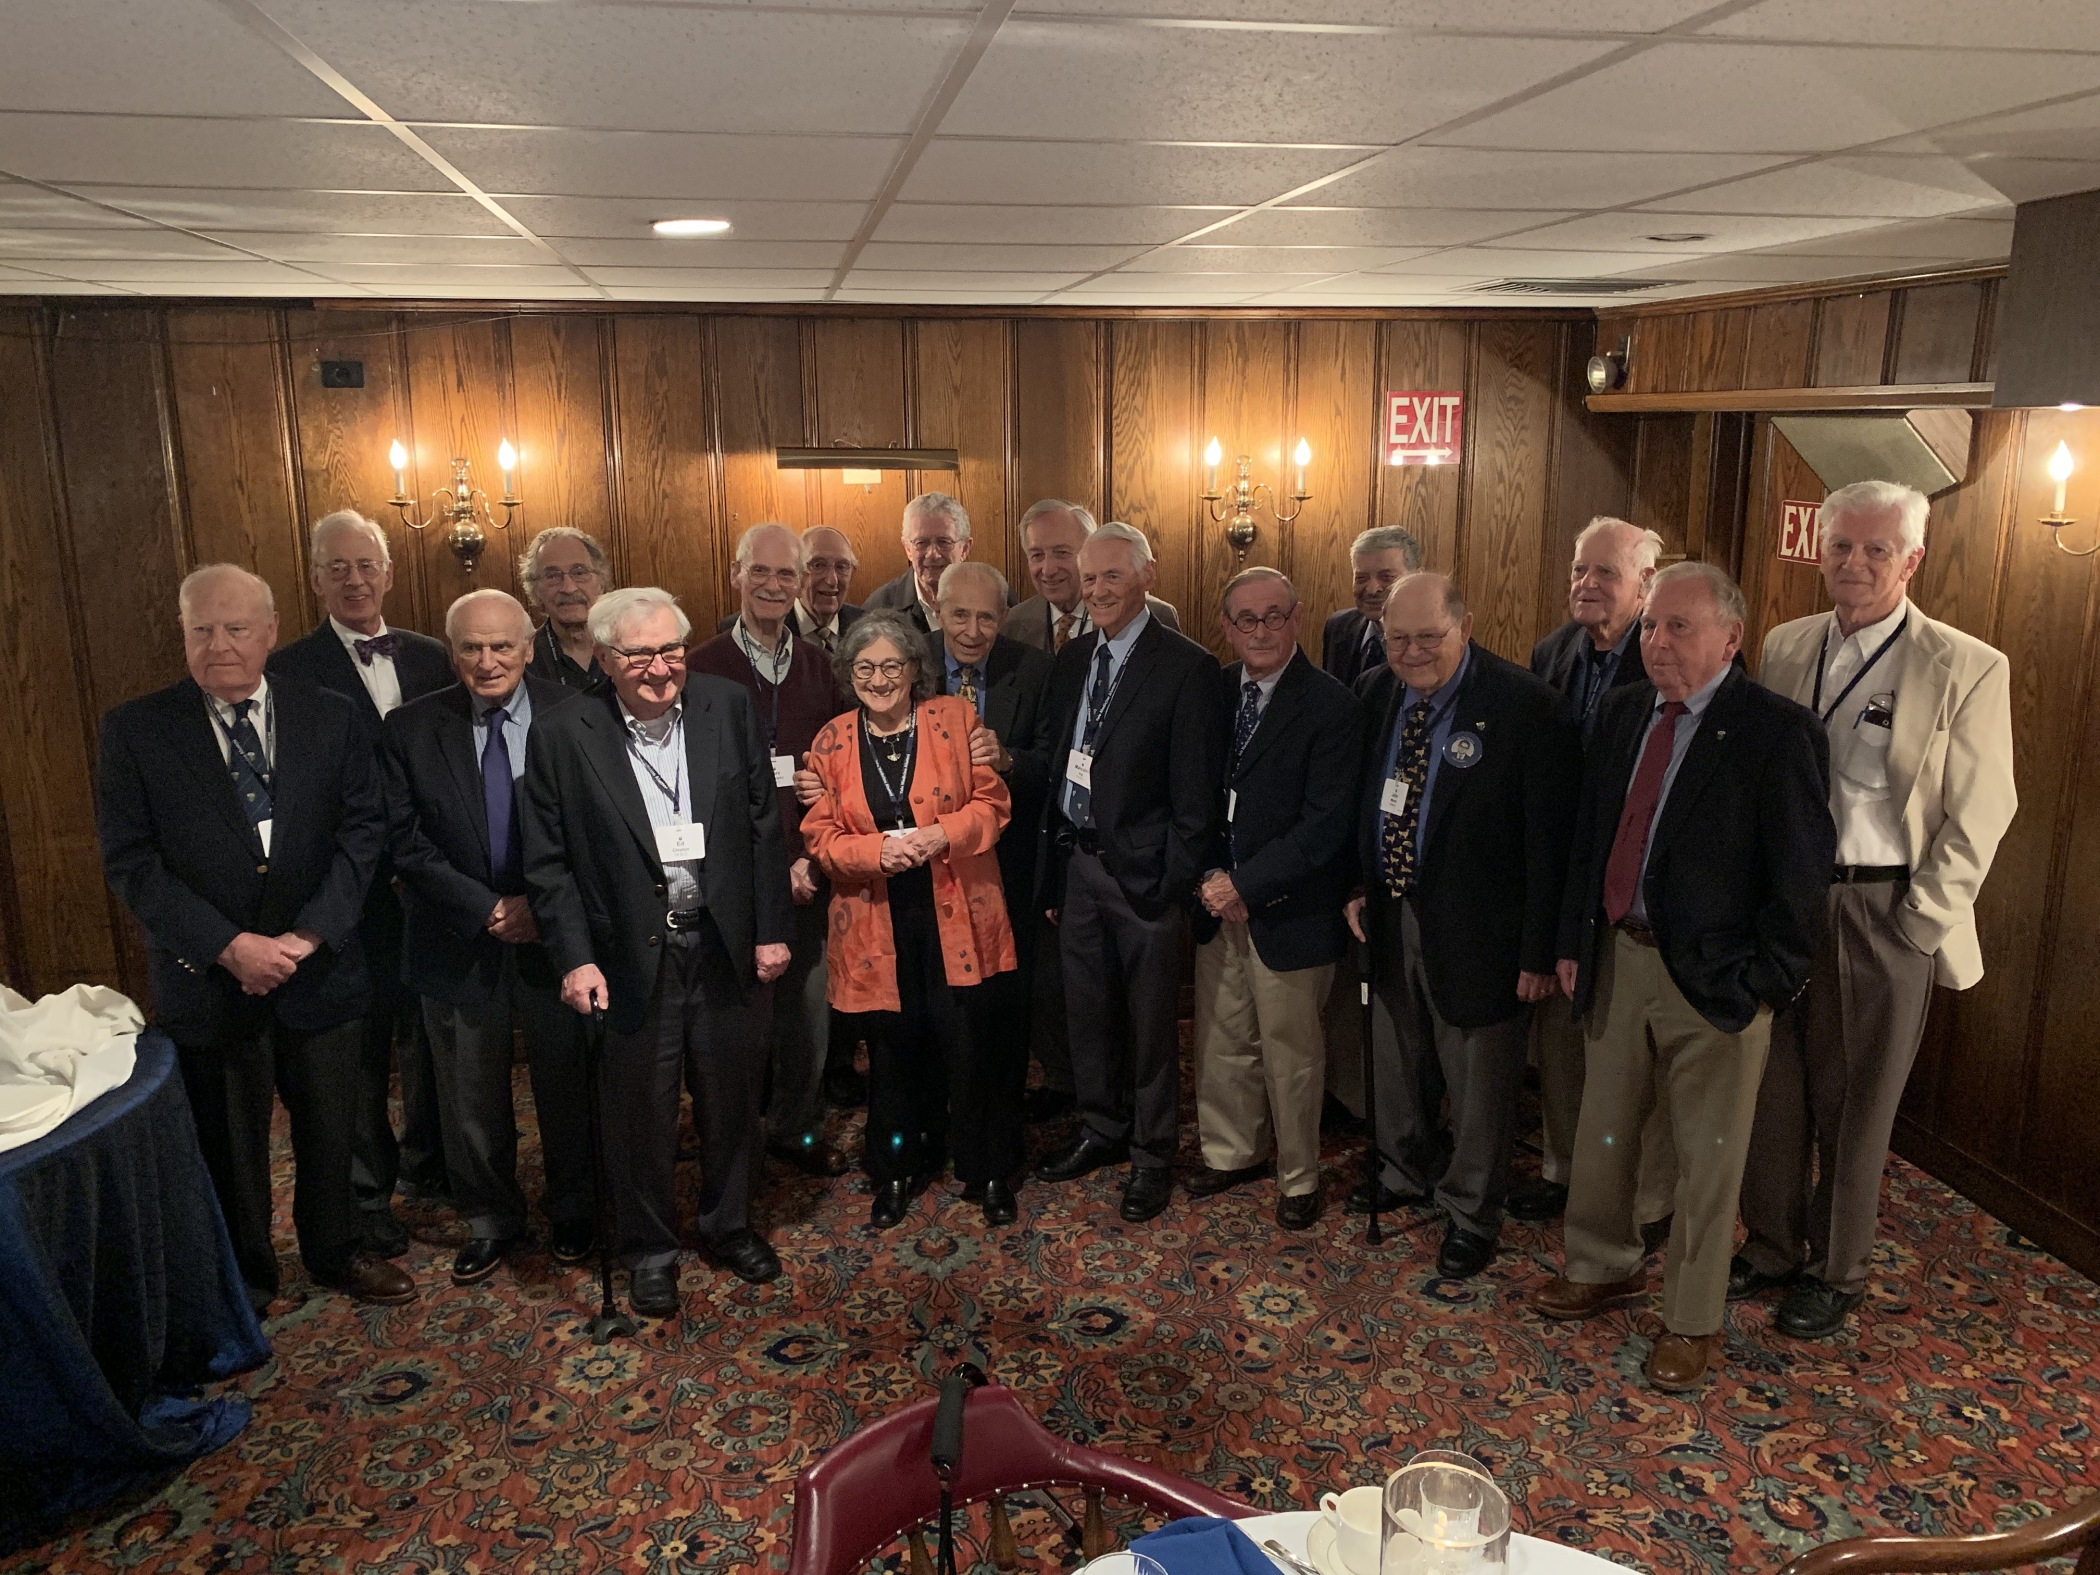 60th Reunion Dinner at Quninnipiack Club, June 1, 2019